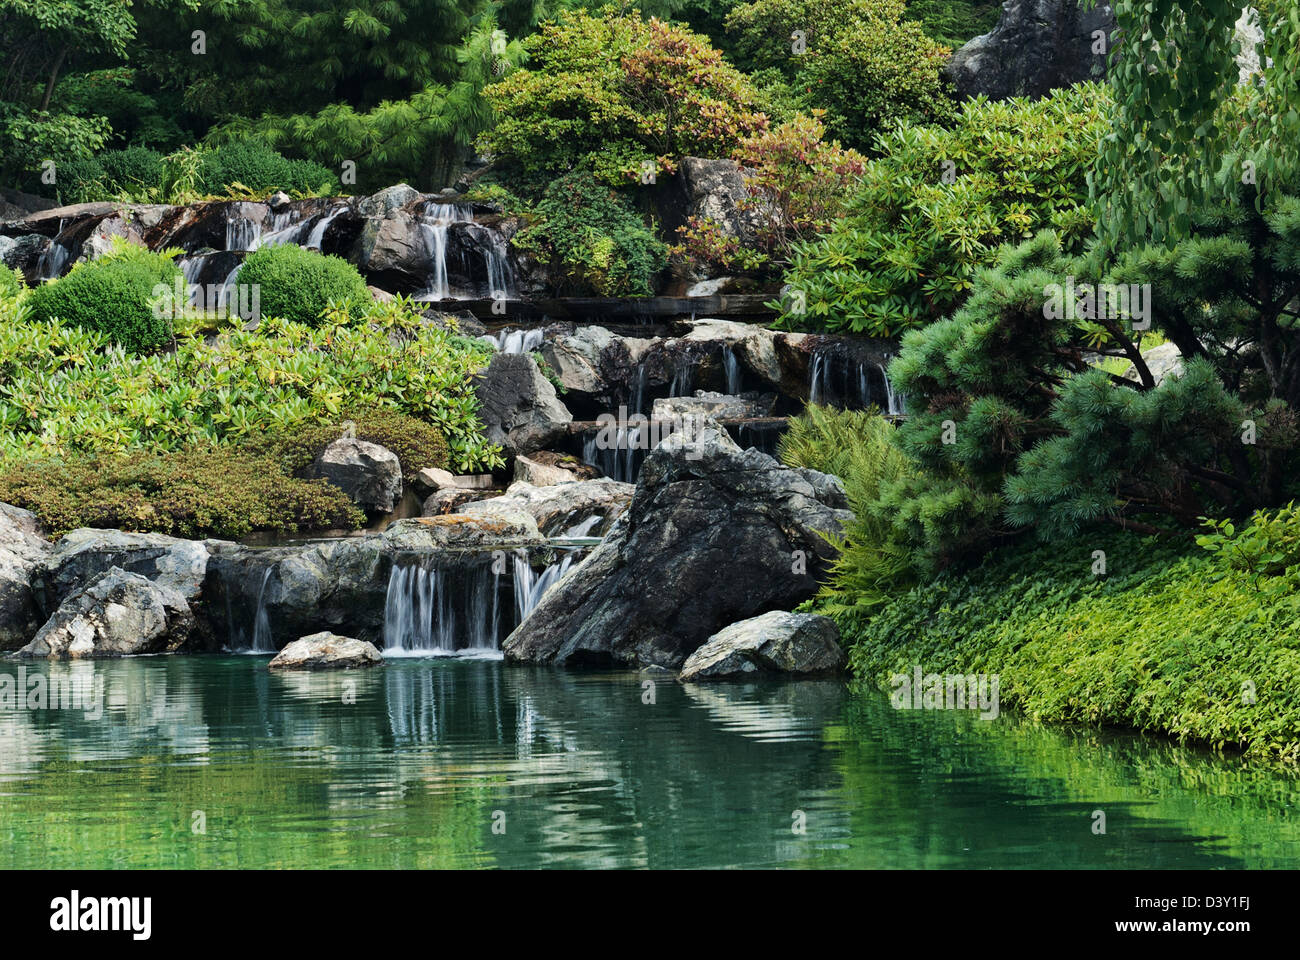 Japanese Waterfalls High Resolution Stock Photography And Images